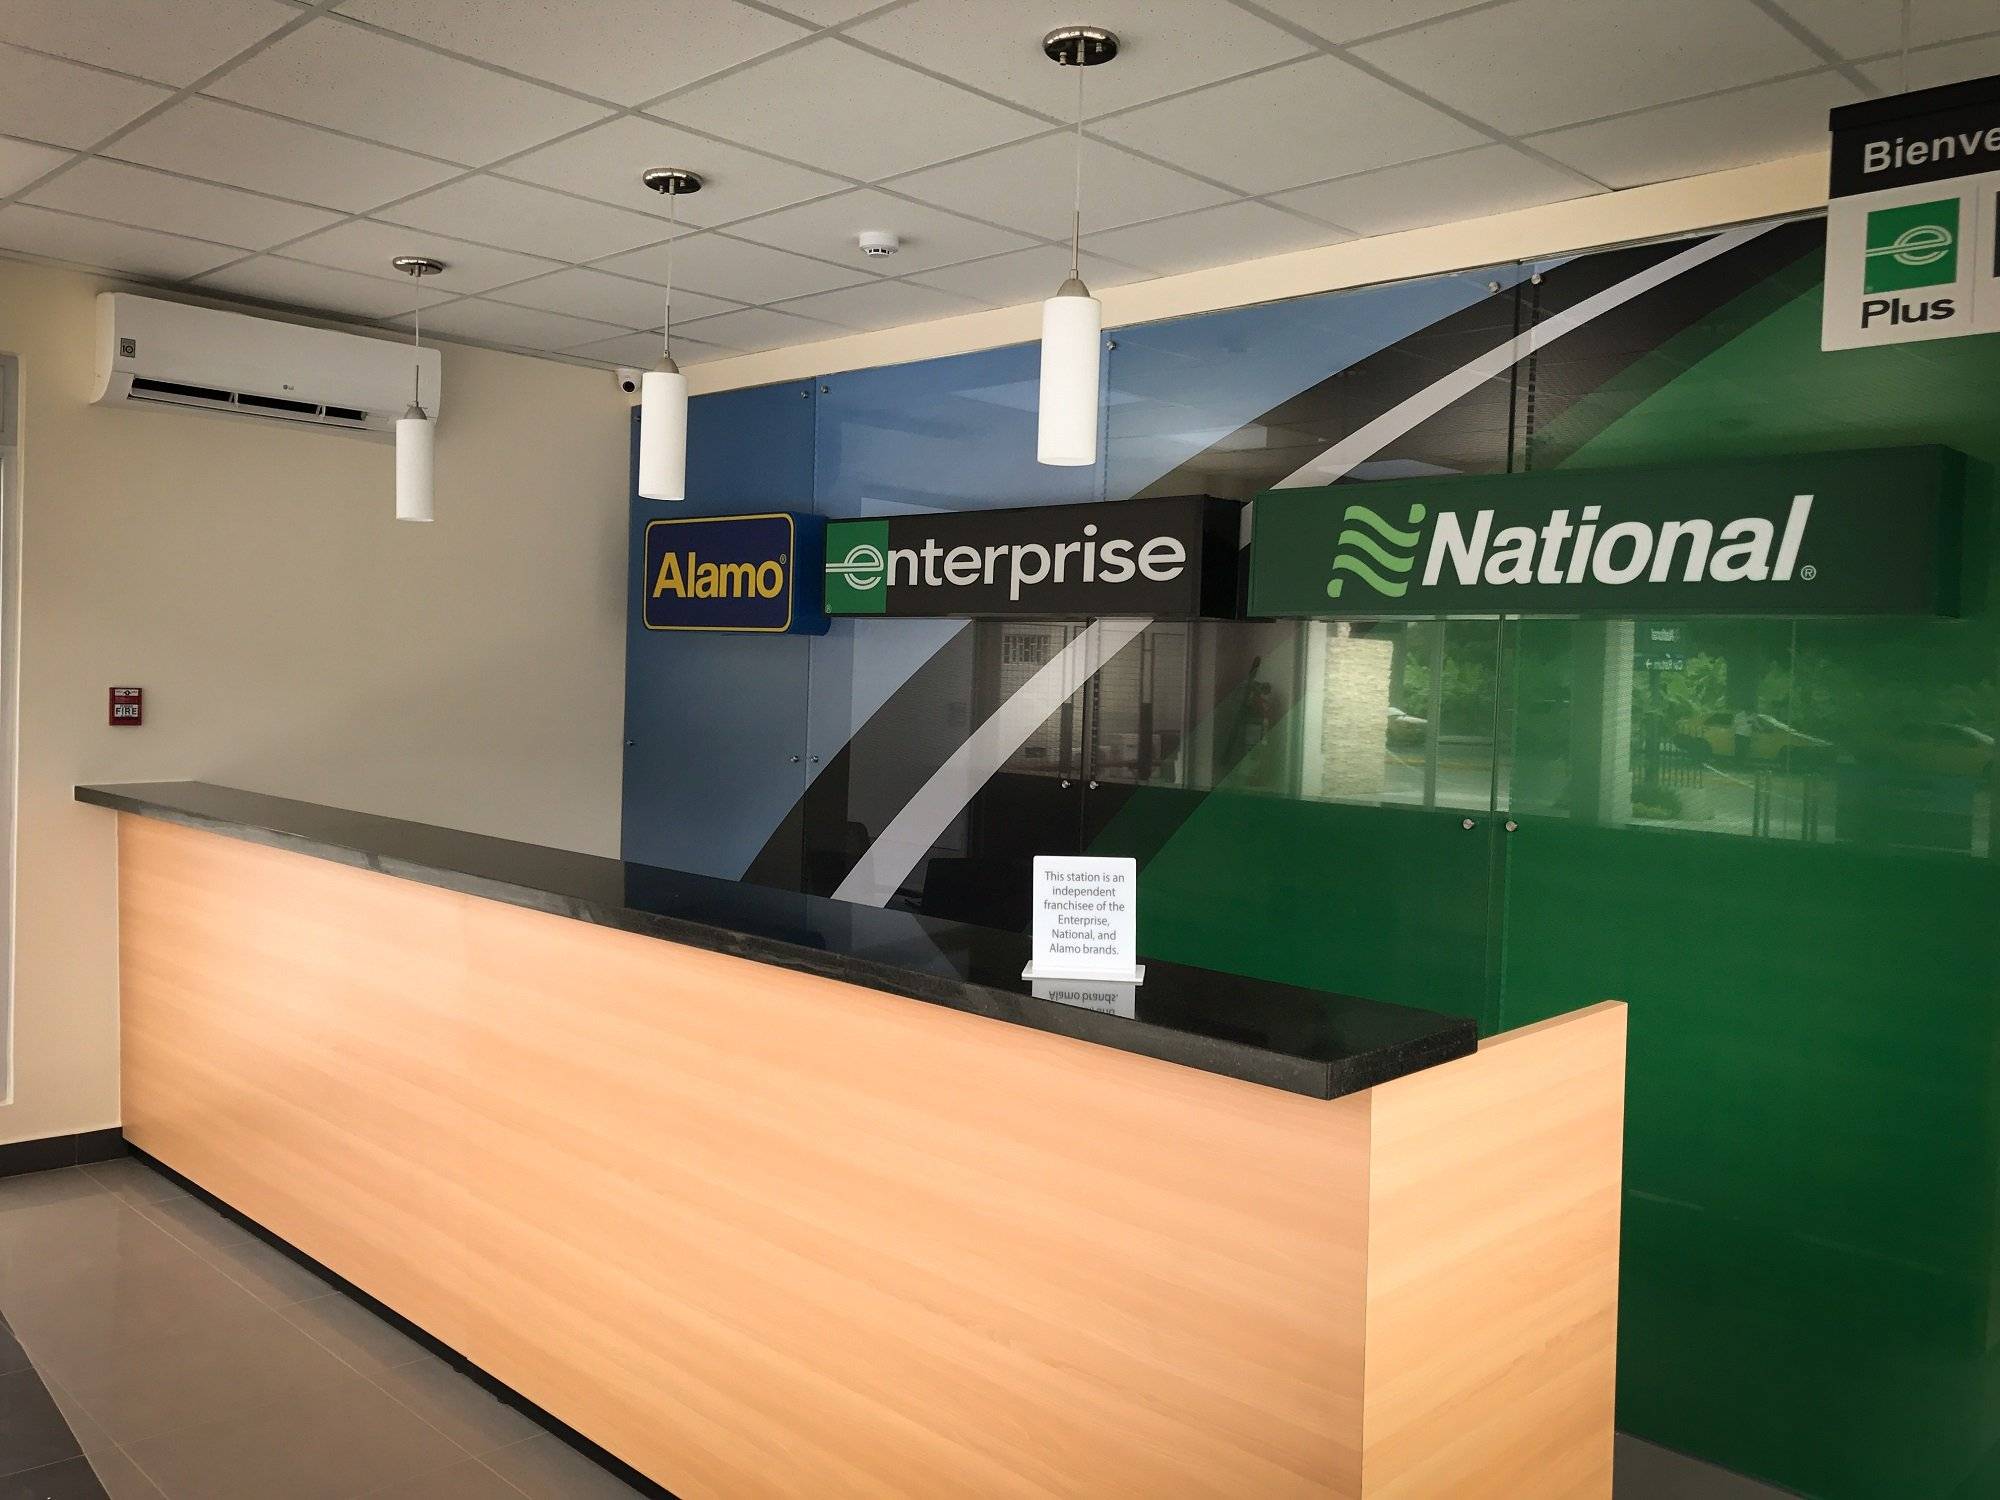 Enterprise-National-Alamo-Guayaquil-A3-Arquitectos-Quito-Ecuador-4